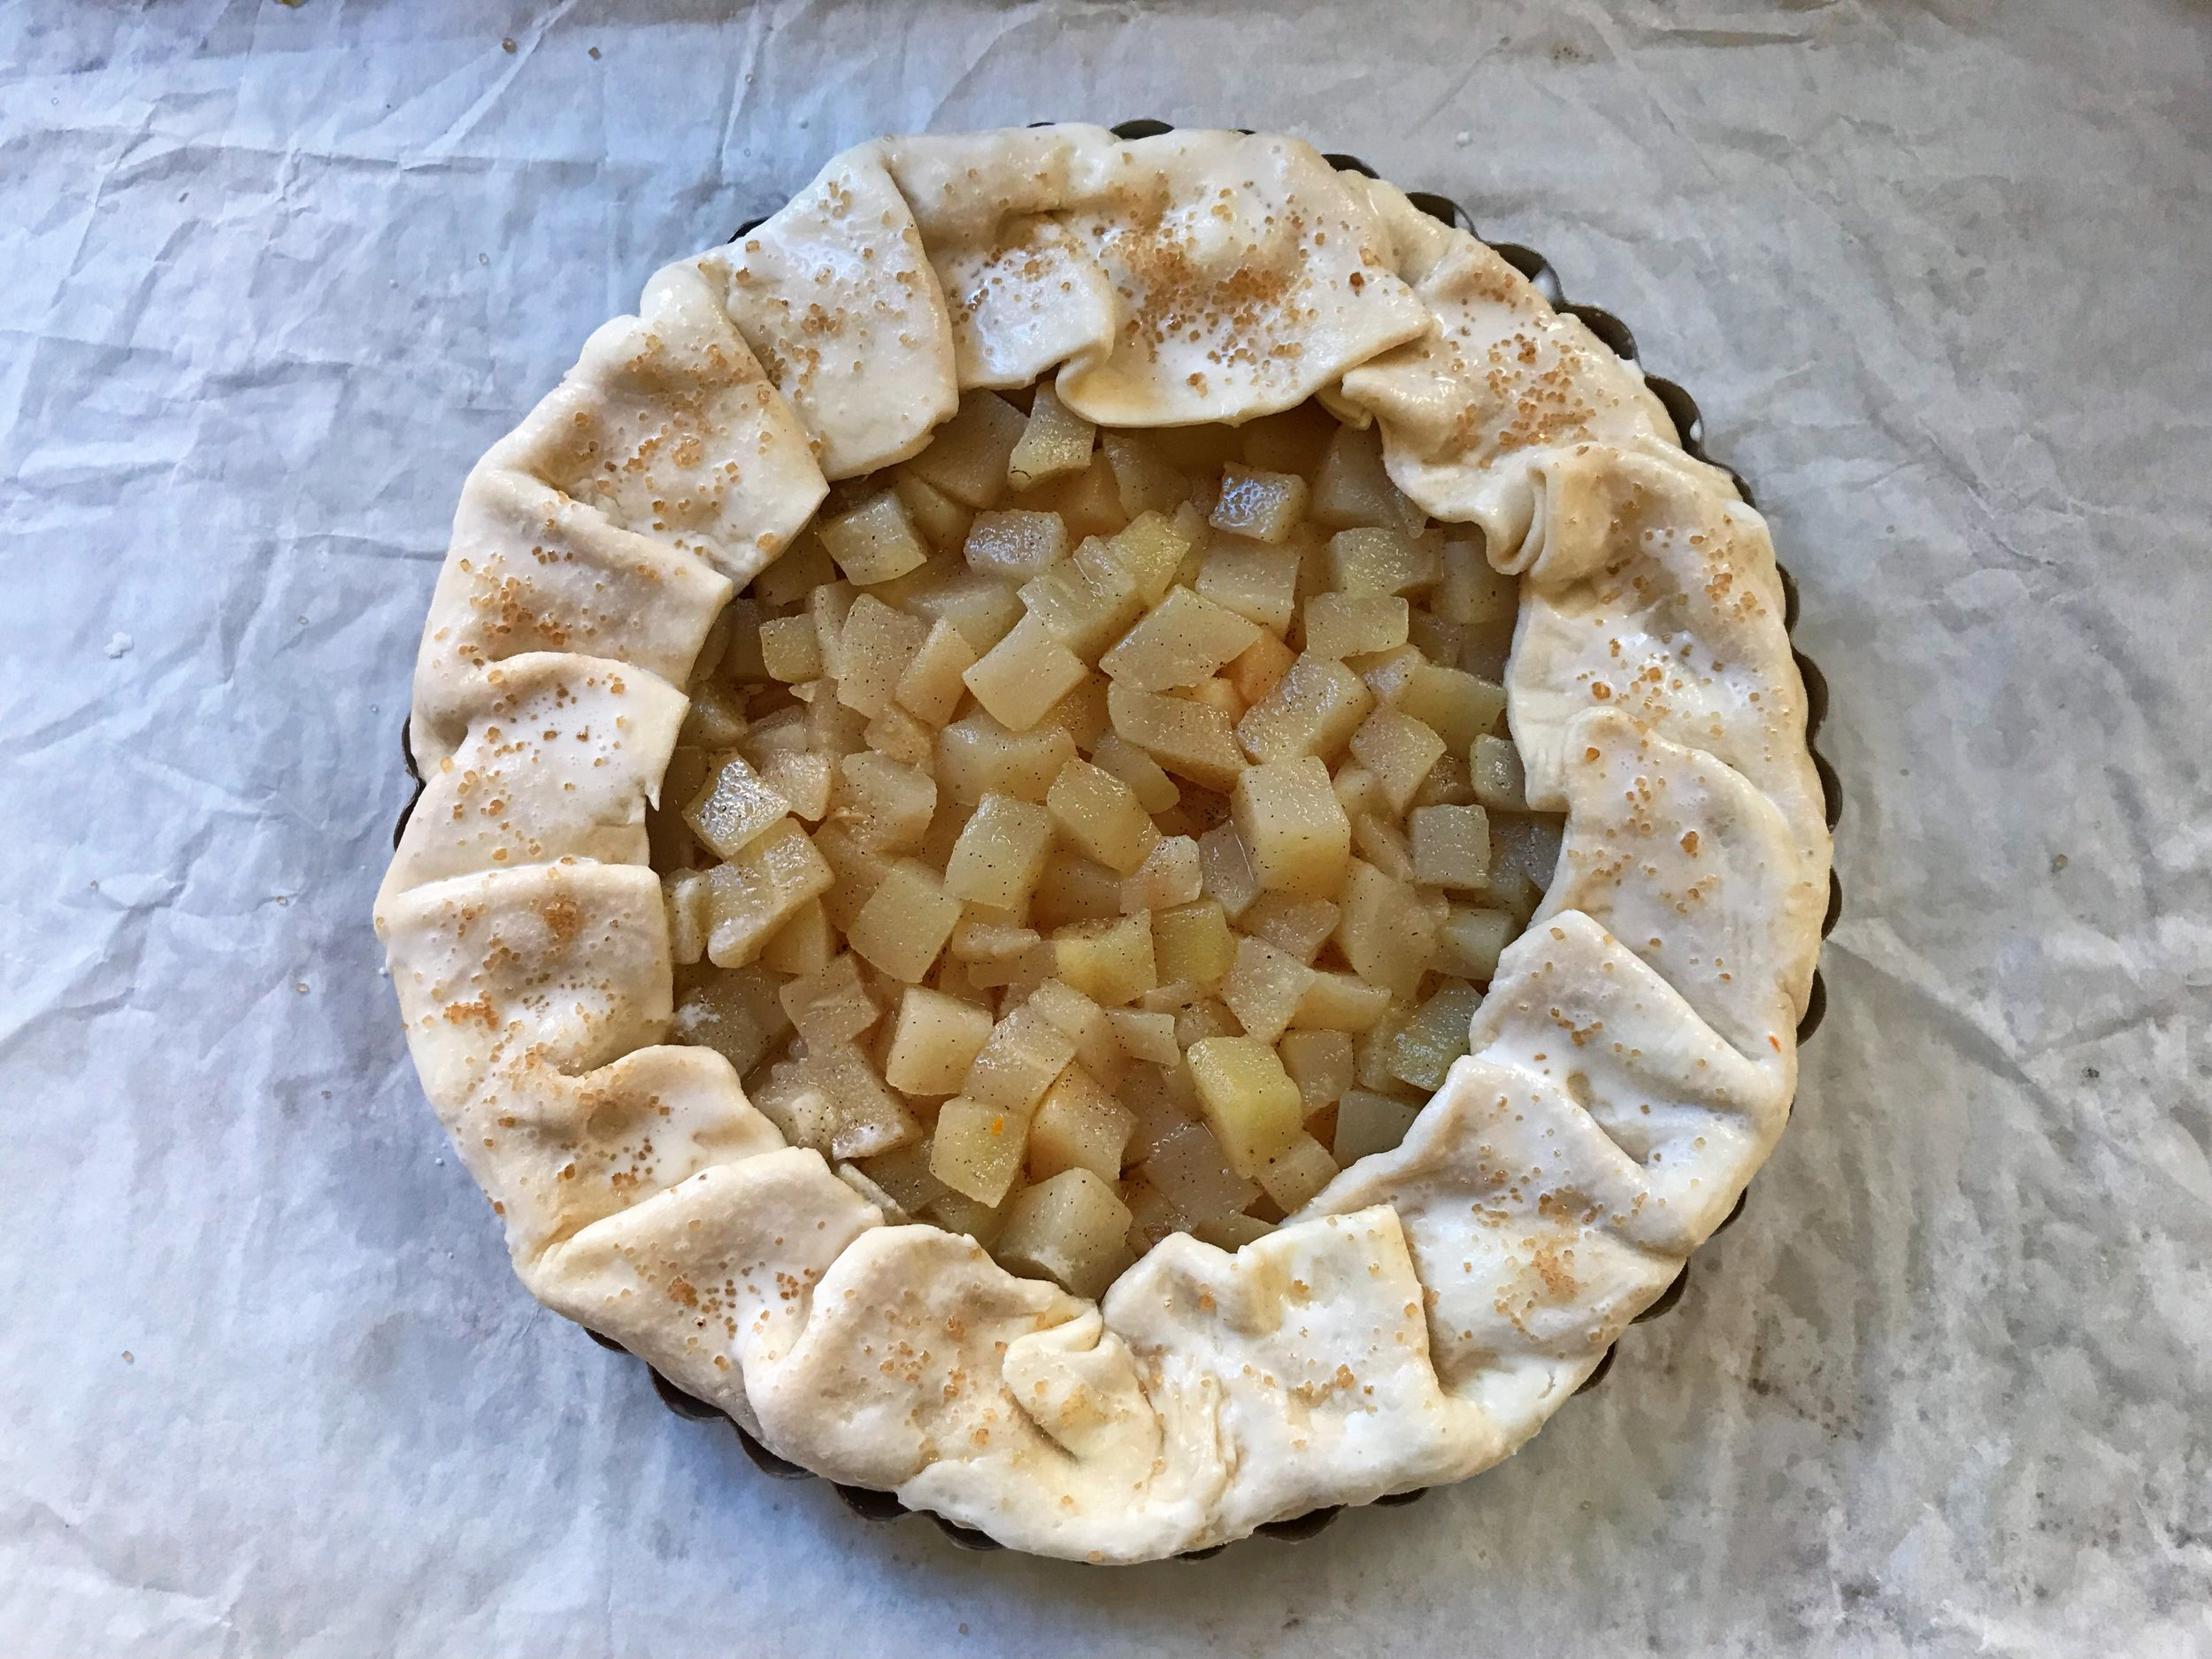 24hourkitchen-thanksgiving-dessert-fruit-vanilla-spice-pear-galette-tart